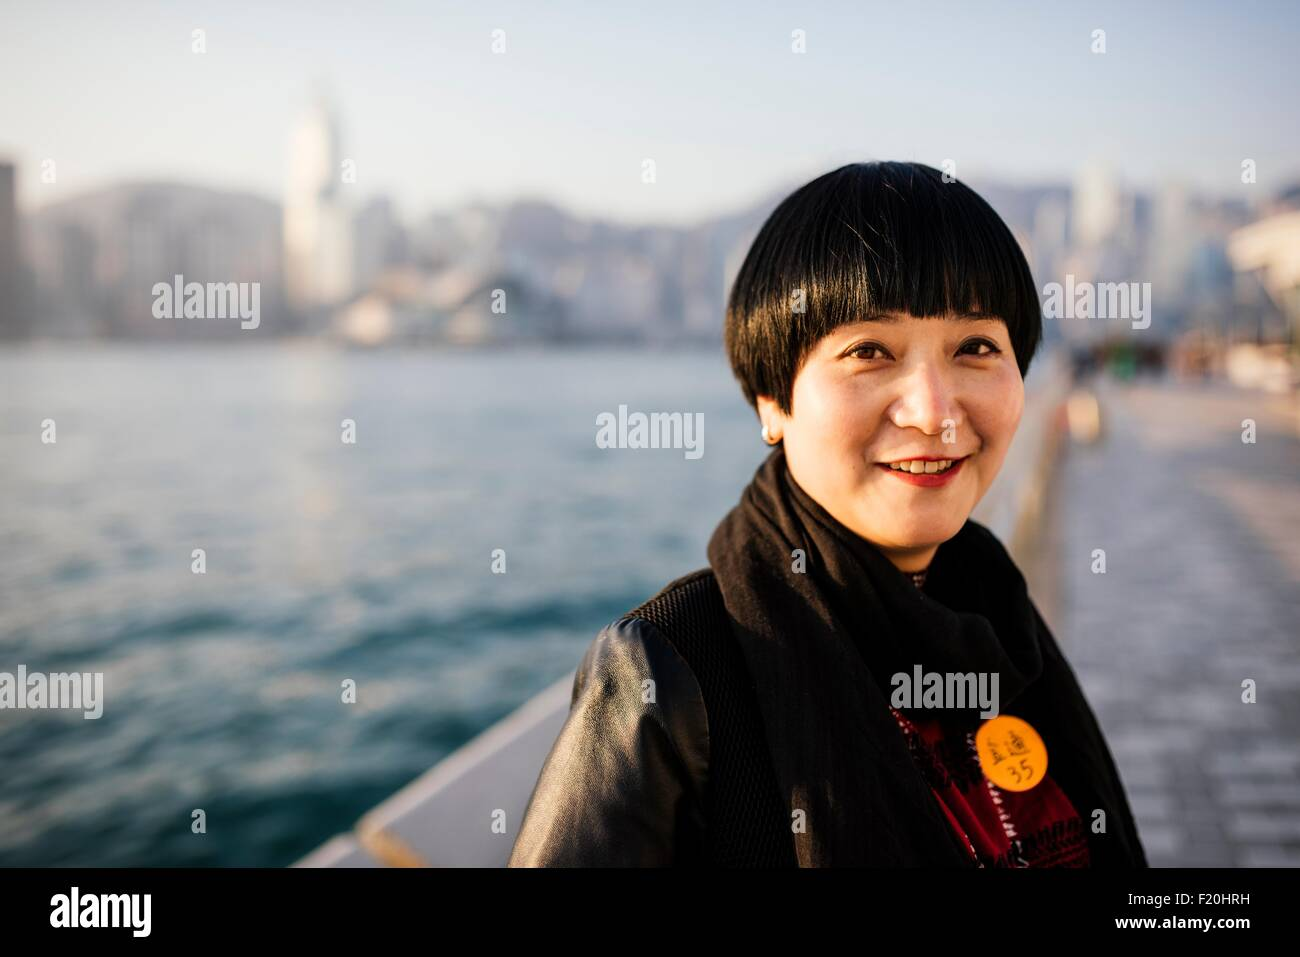 Portrait of mid adult woman with short hair in front of water looking at camera smiling - Stock Image